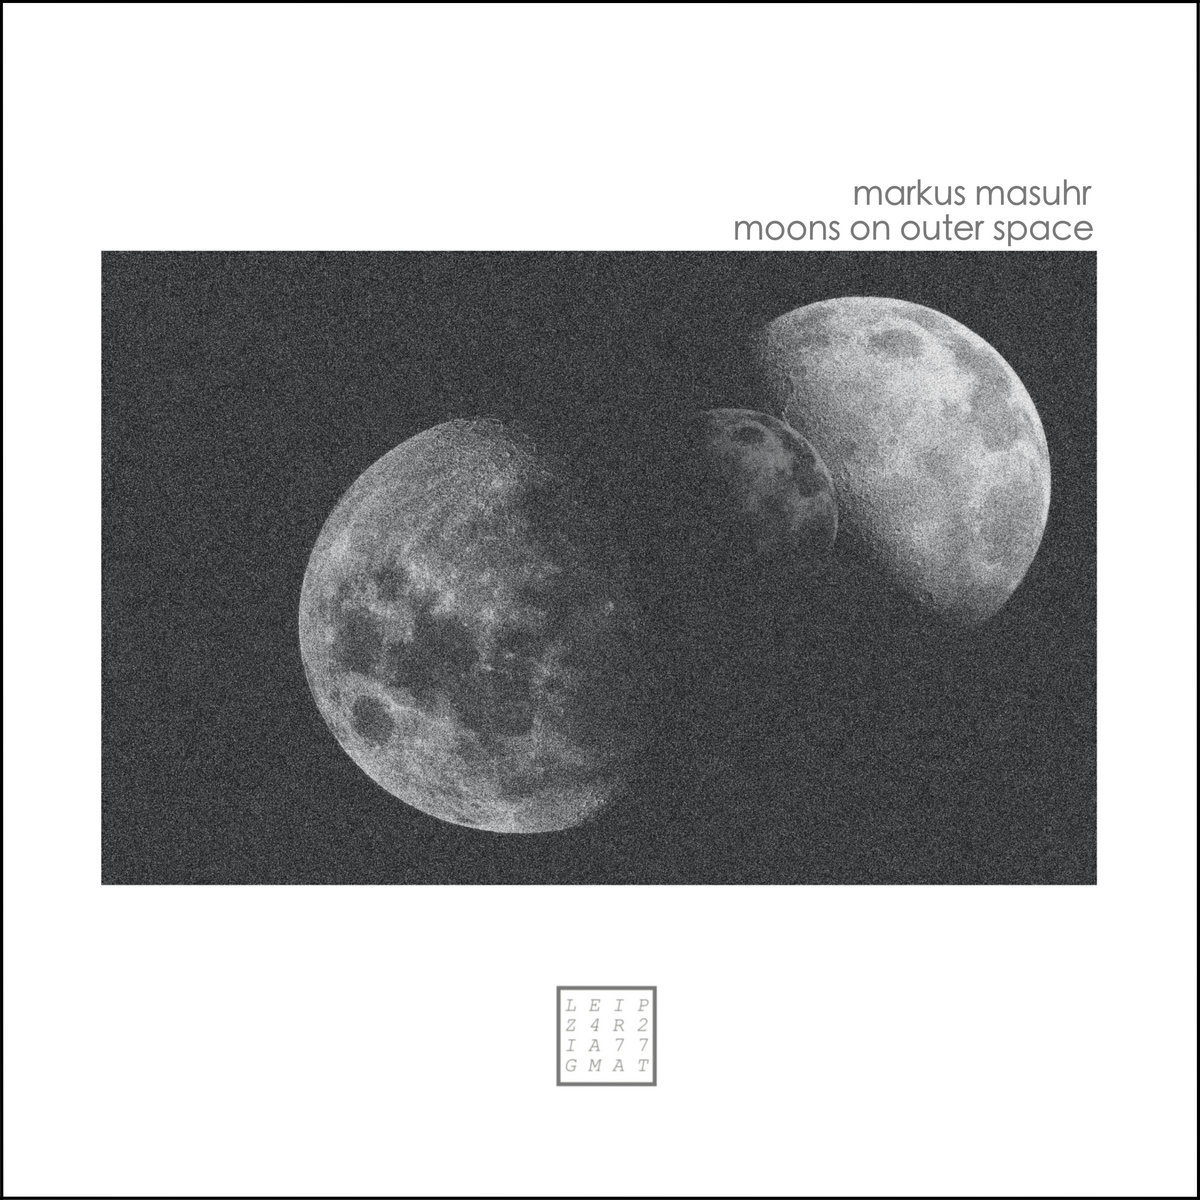 Markus Masuhr – moons on outer space